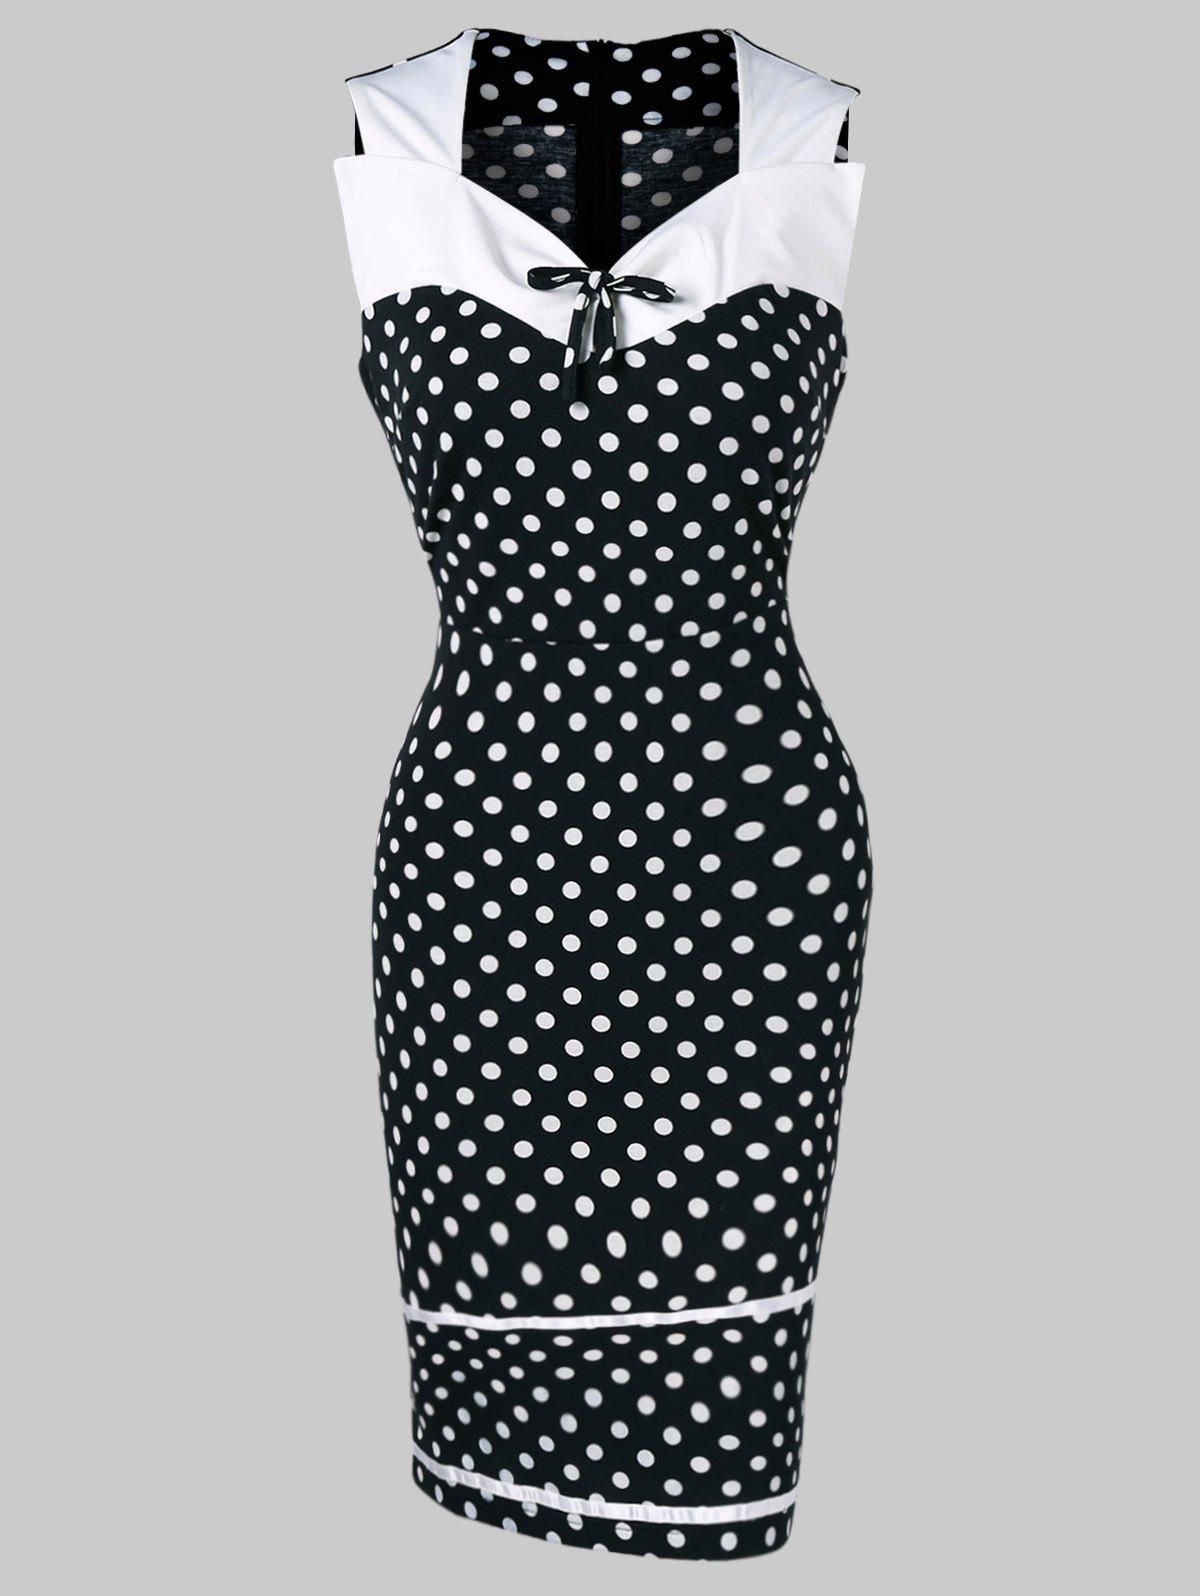 Affordable Retro Polka Dot Mini Dress